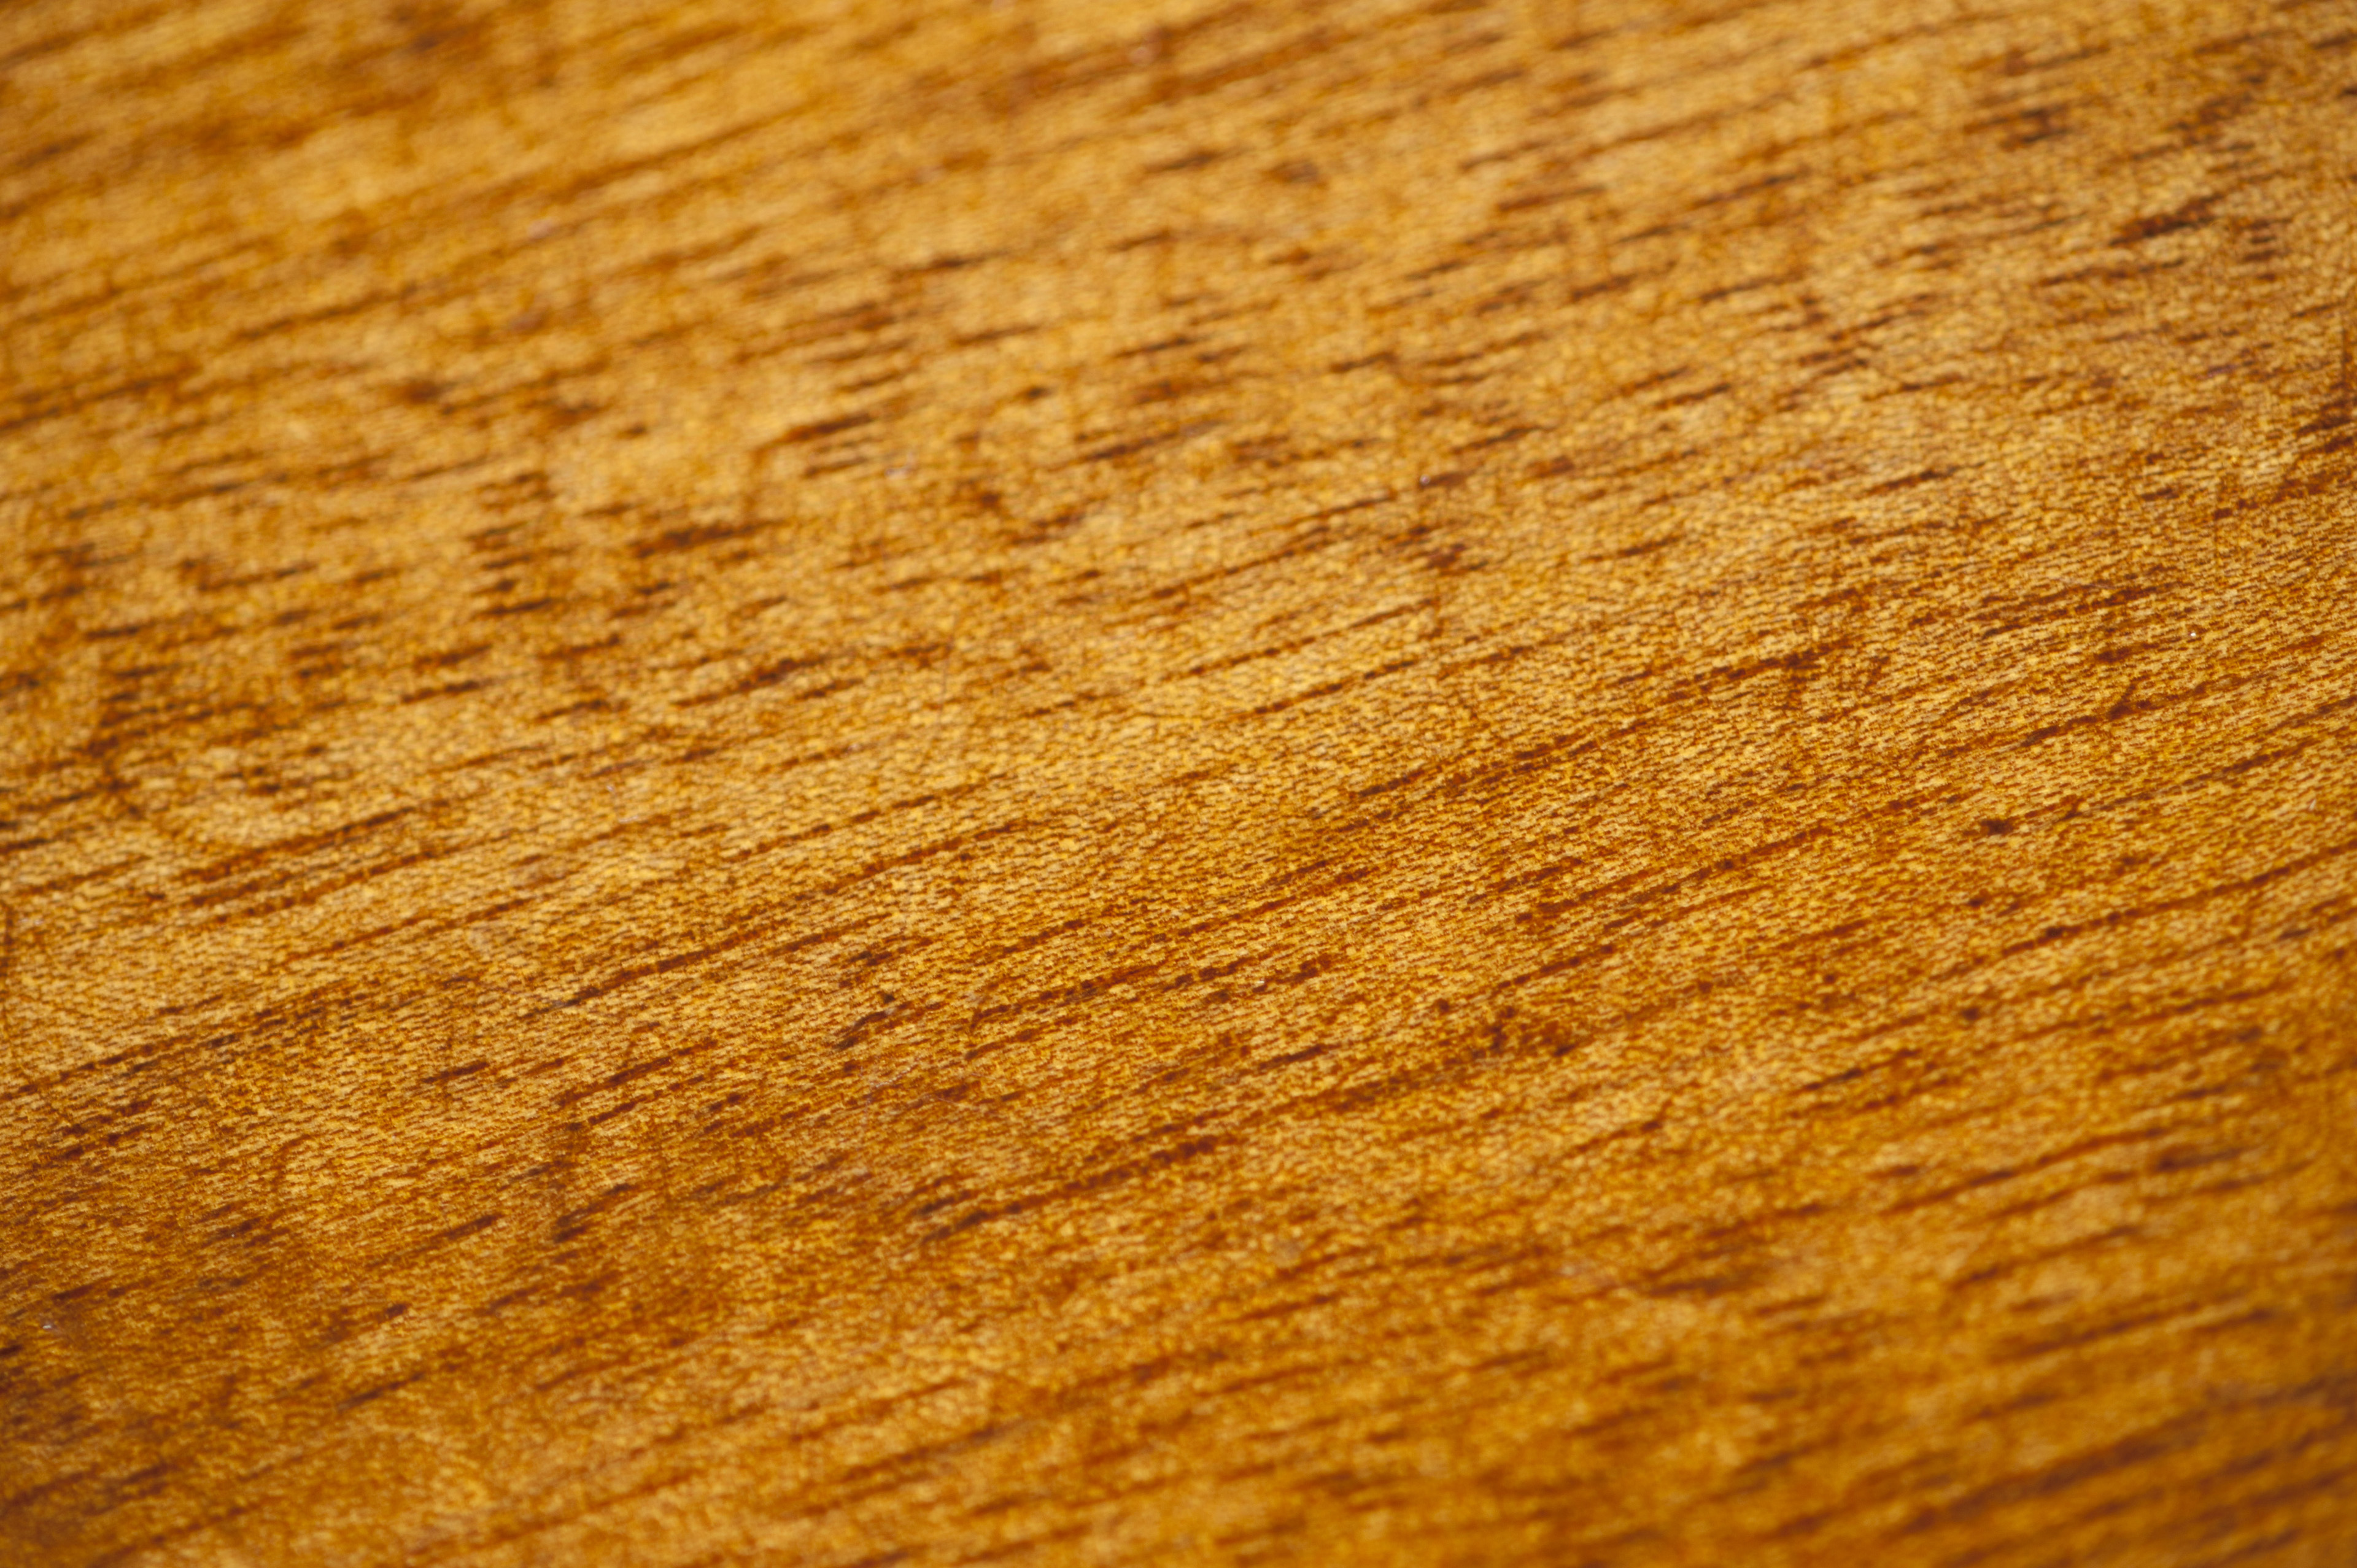 Close Up Detail of Light Wood Grain Texture Suitable for Backgrounds